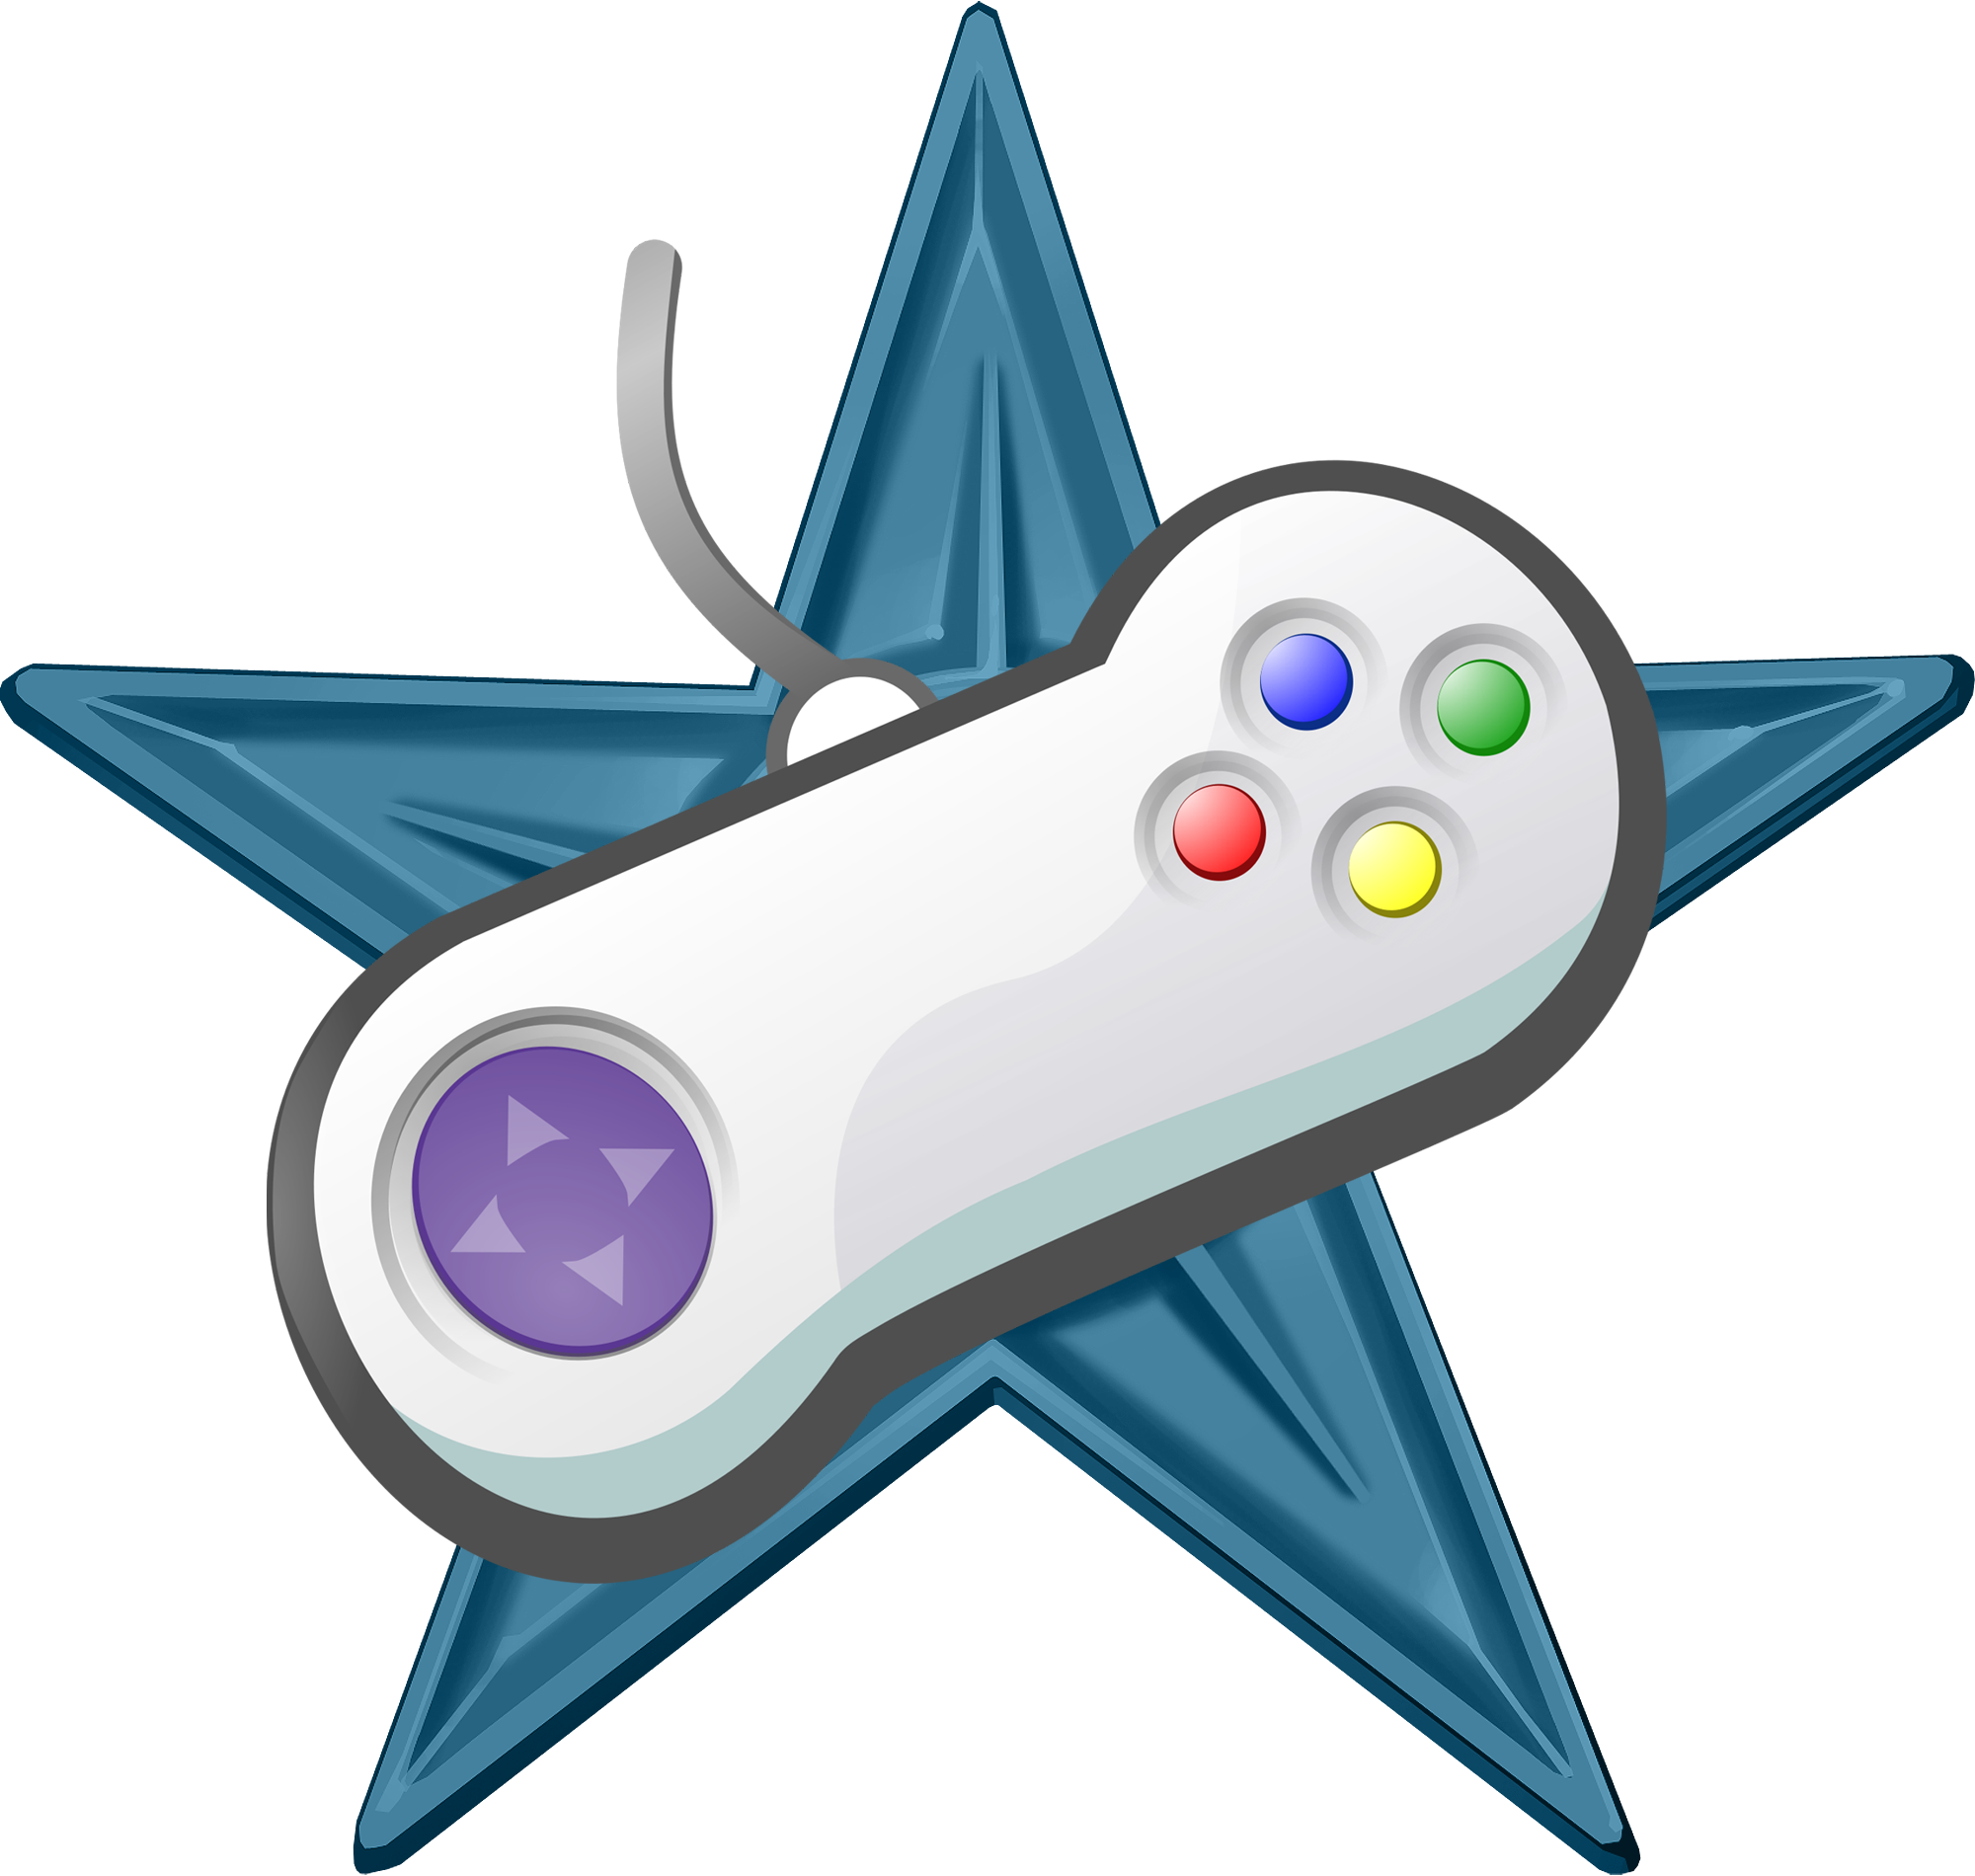 File:Video Game Barnstar Hires.png - Wikimedia Commons